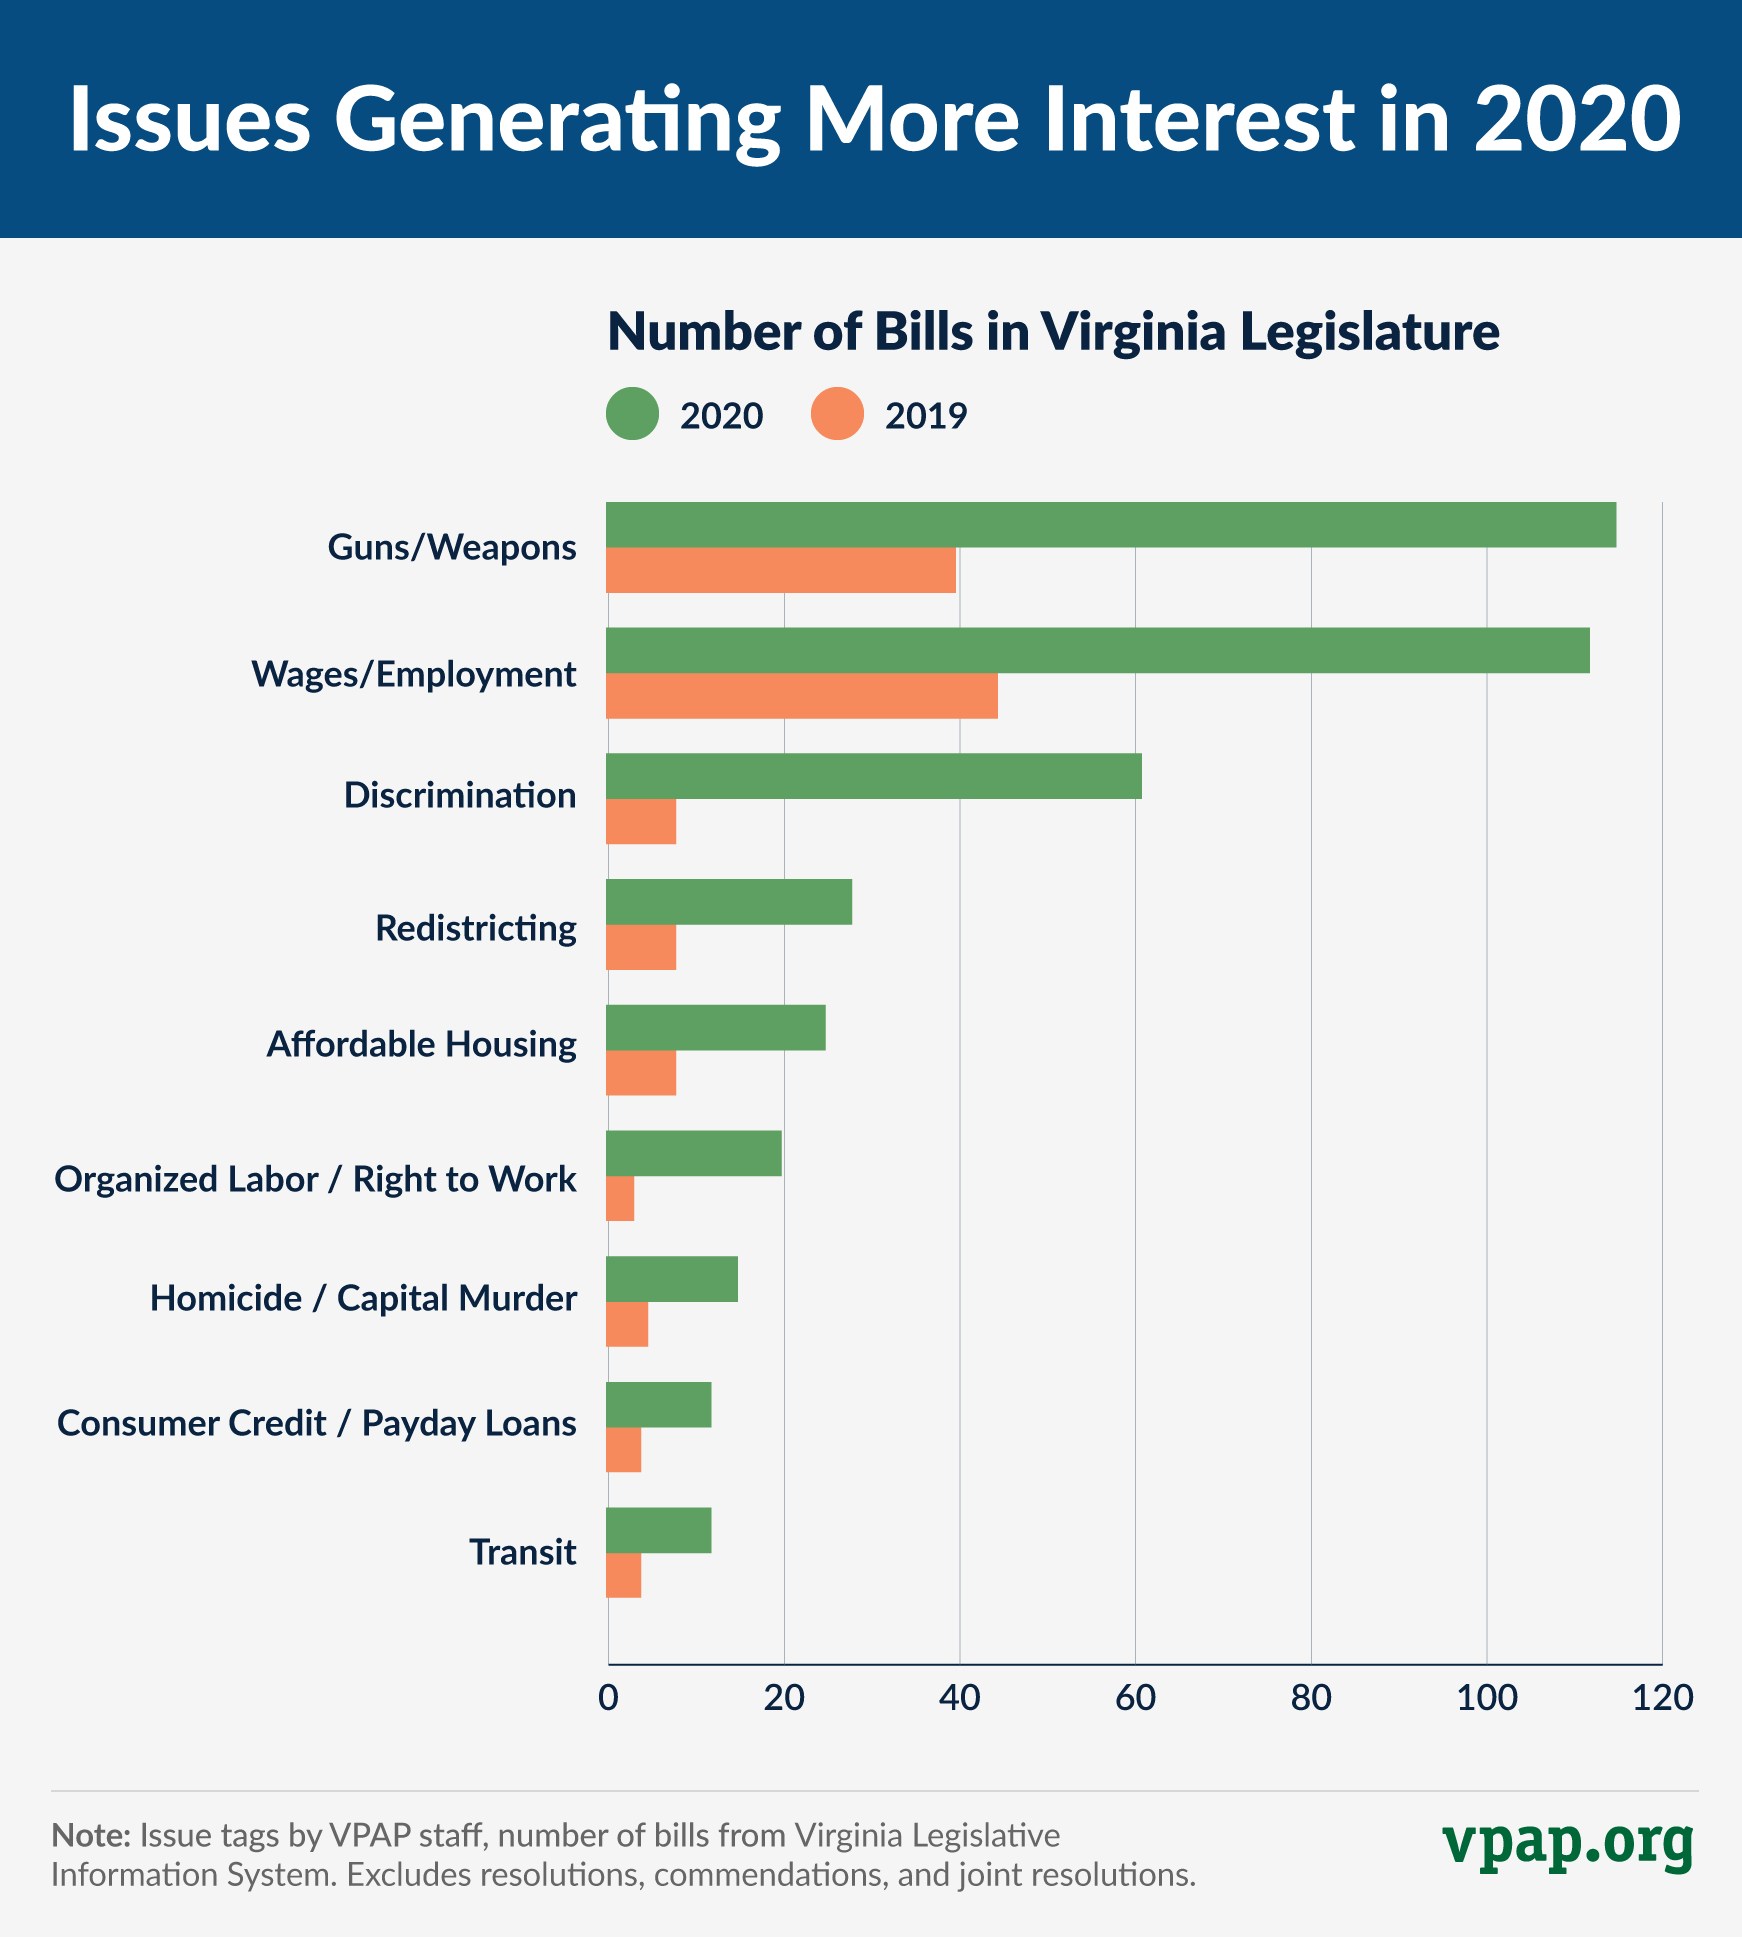 Select Issues Generating More Interest in 2020